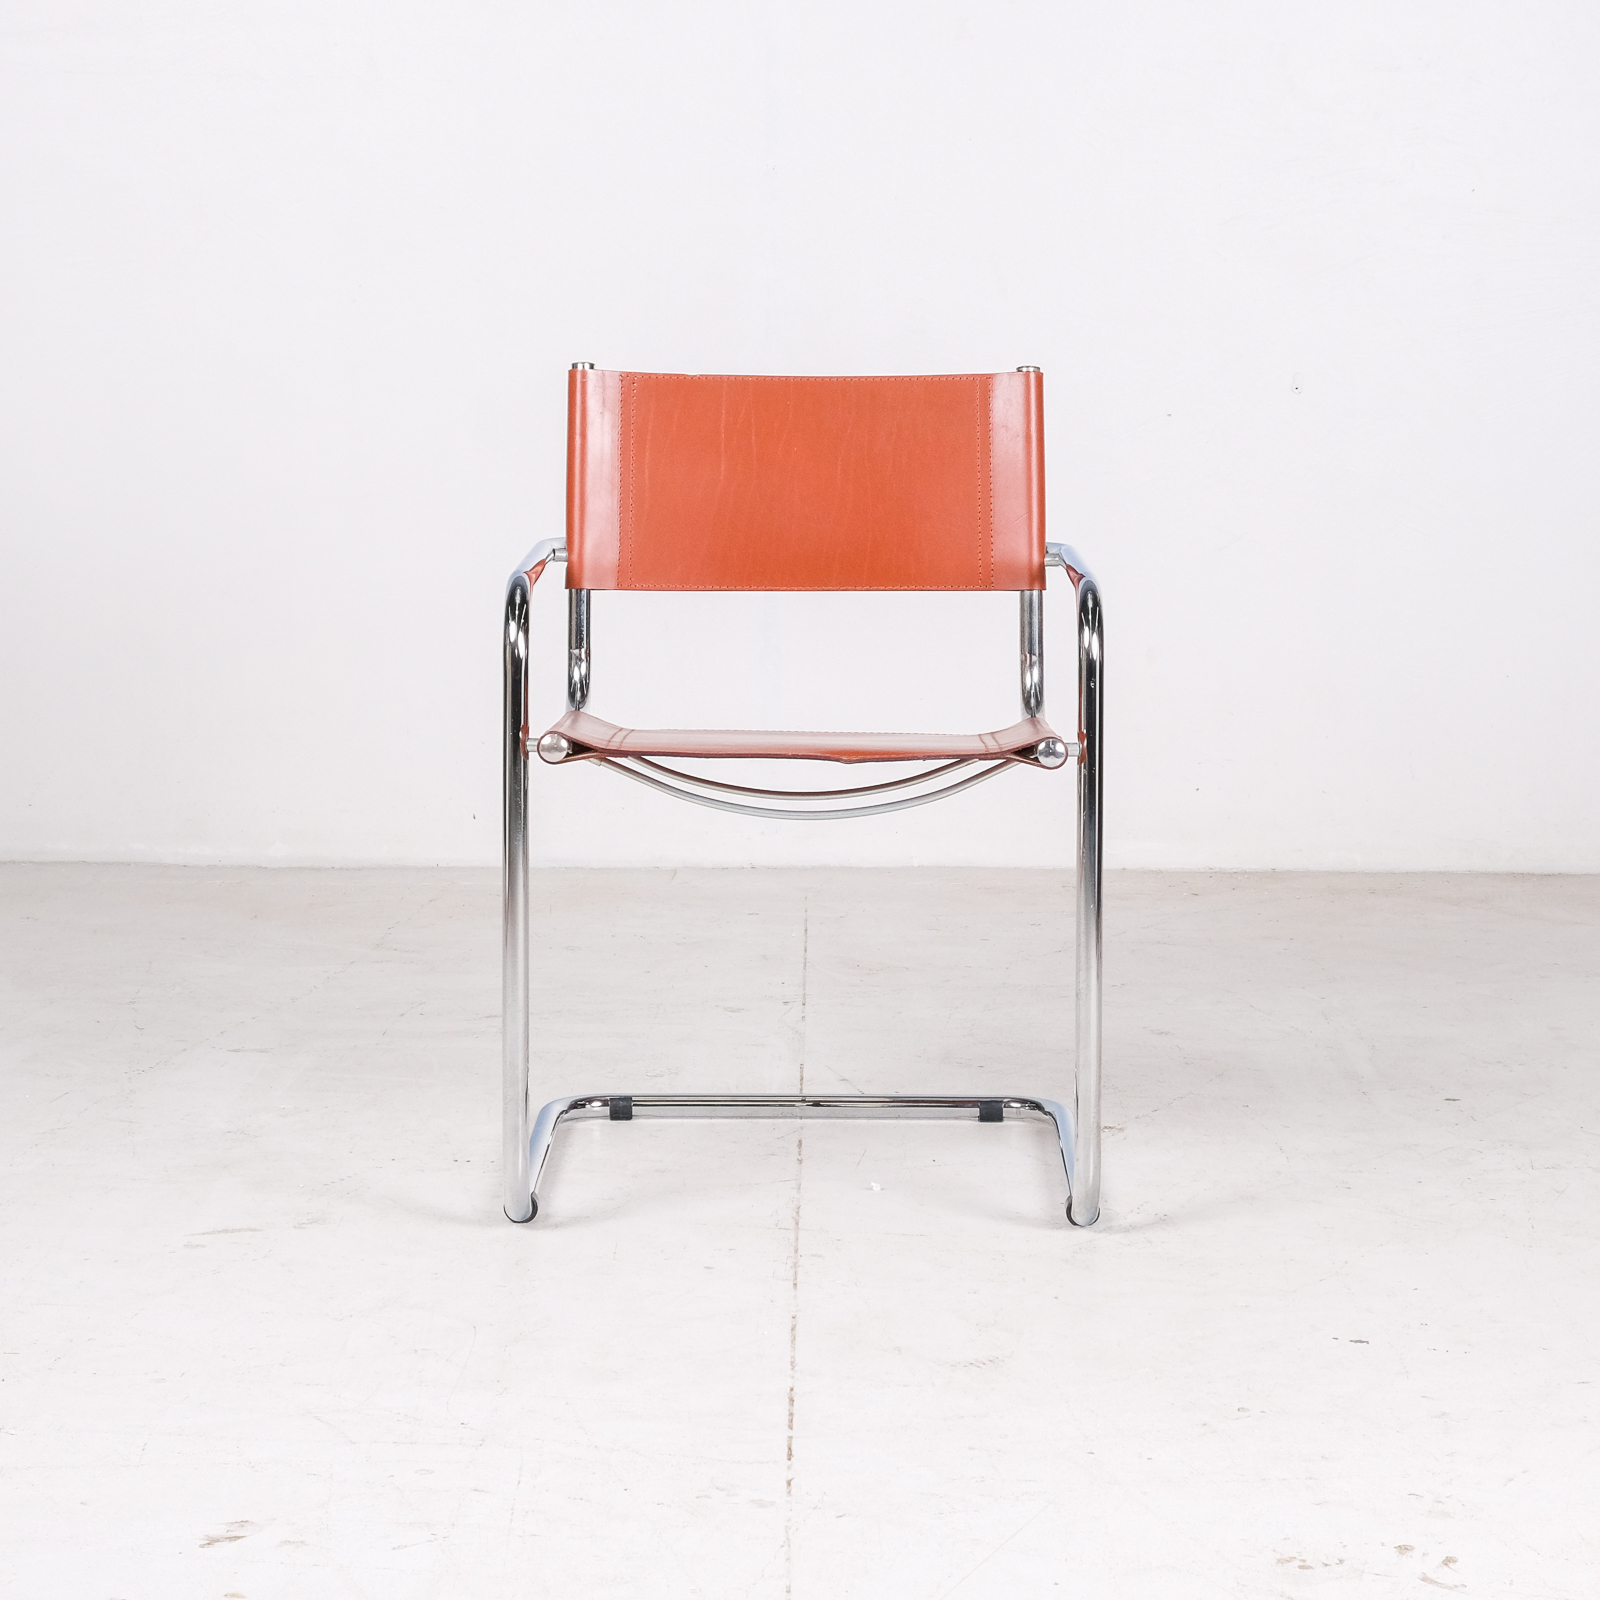 Set Of 4 Model S34 Cantilever Chairs In Cognac Leather By Mart Stam For Thonet, 1980s, Germany004